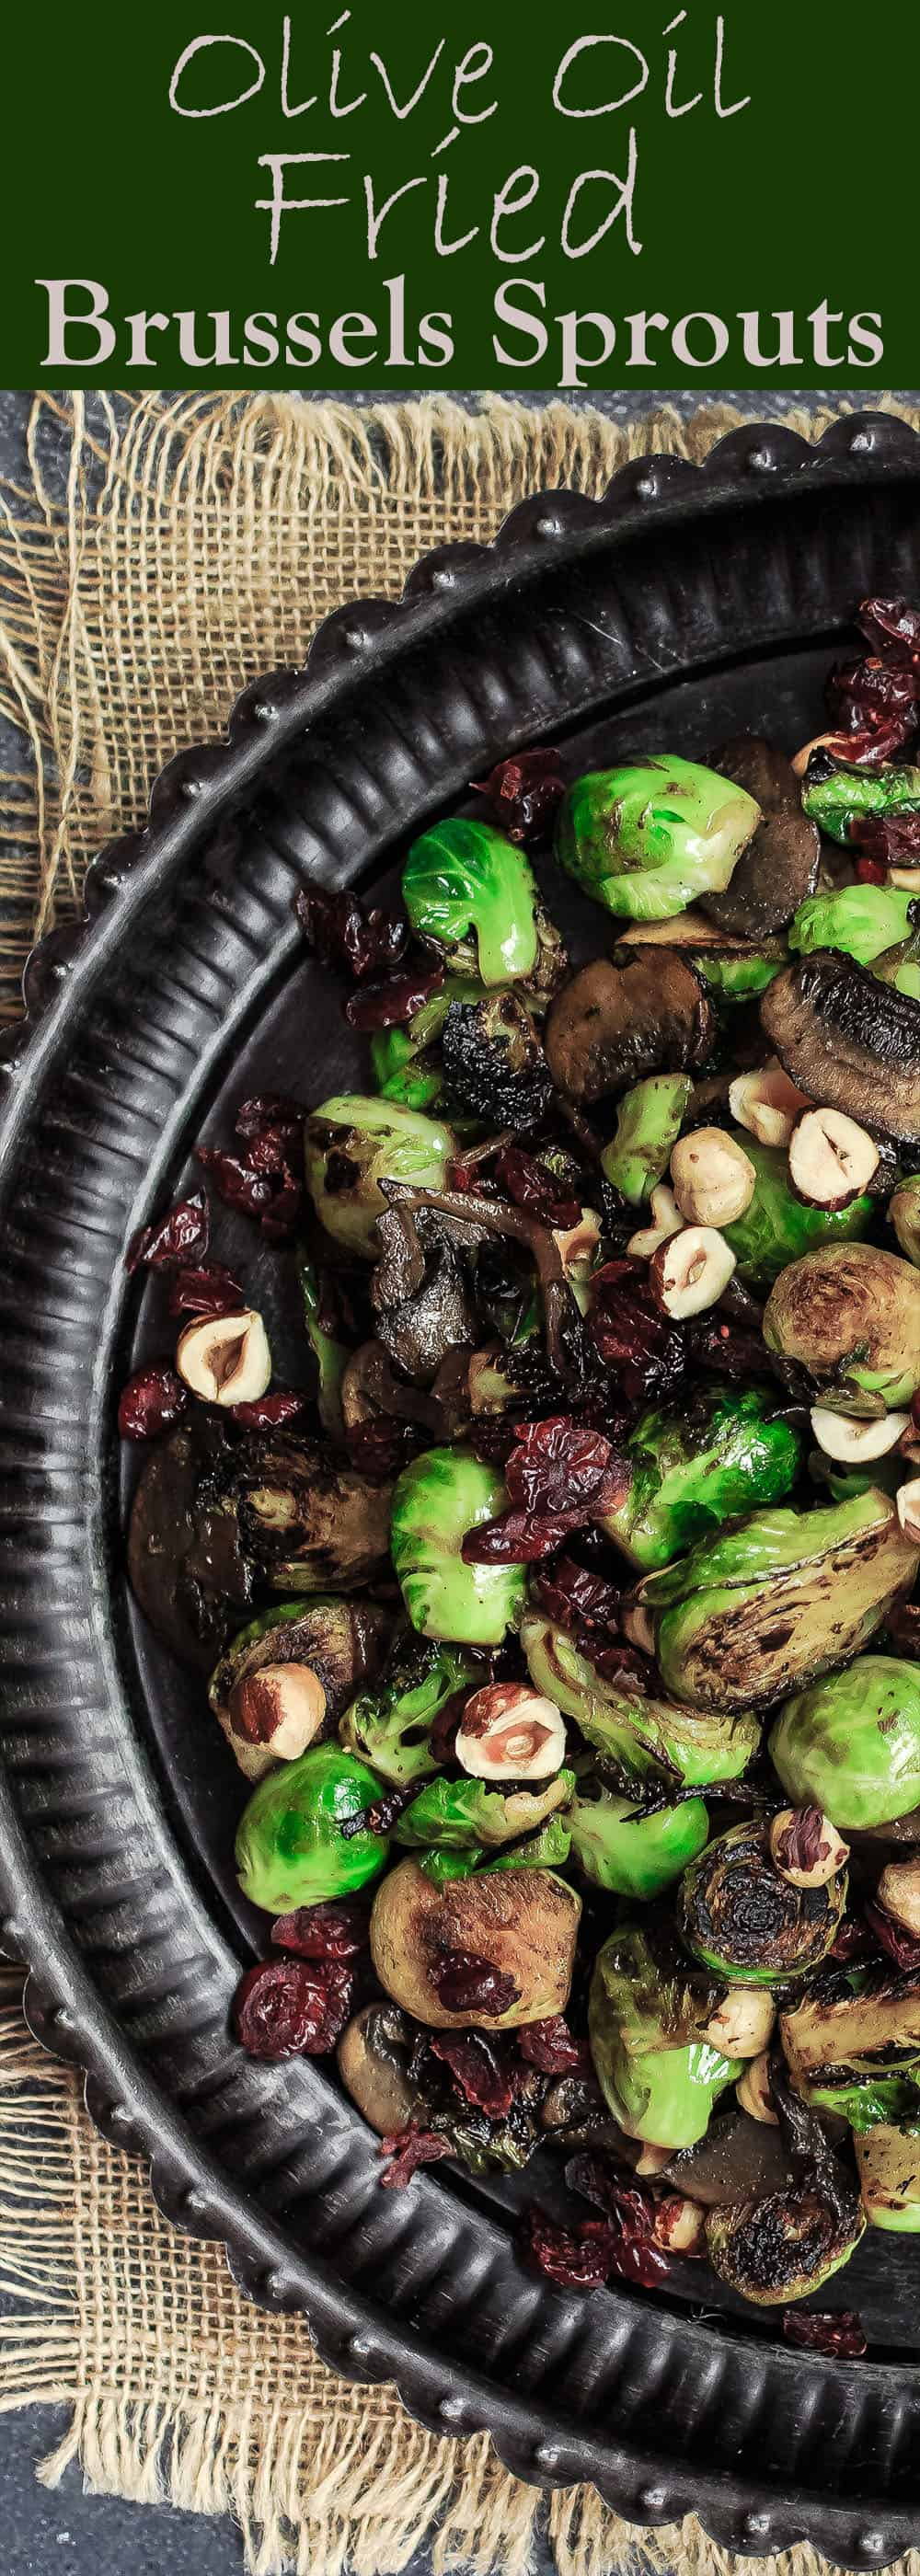 Pan Fried Brussel Sprouts Recipe